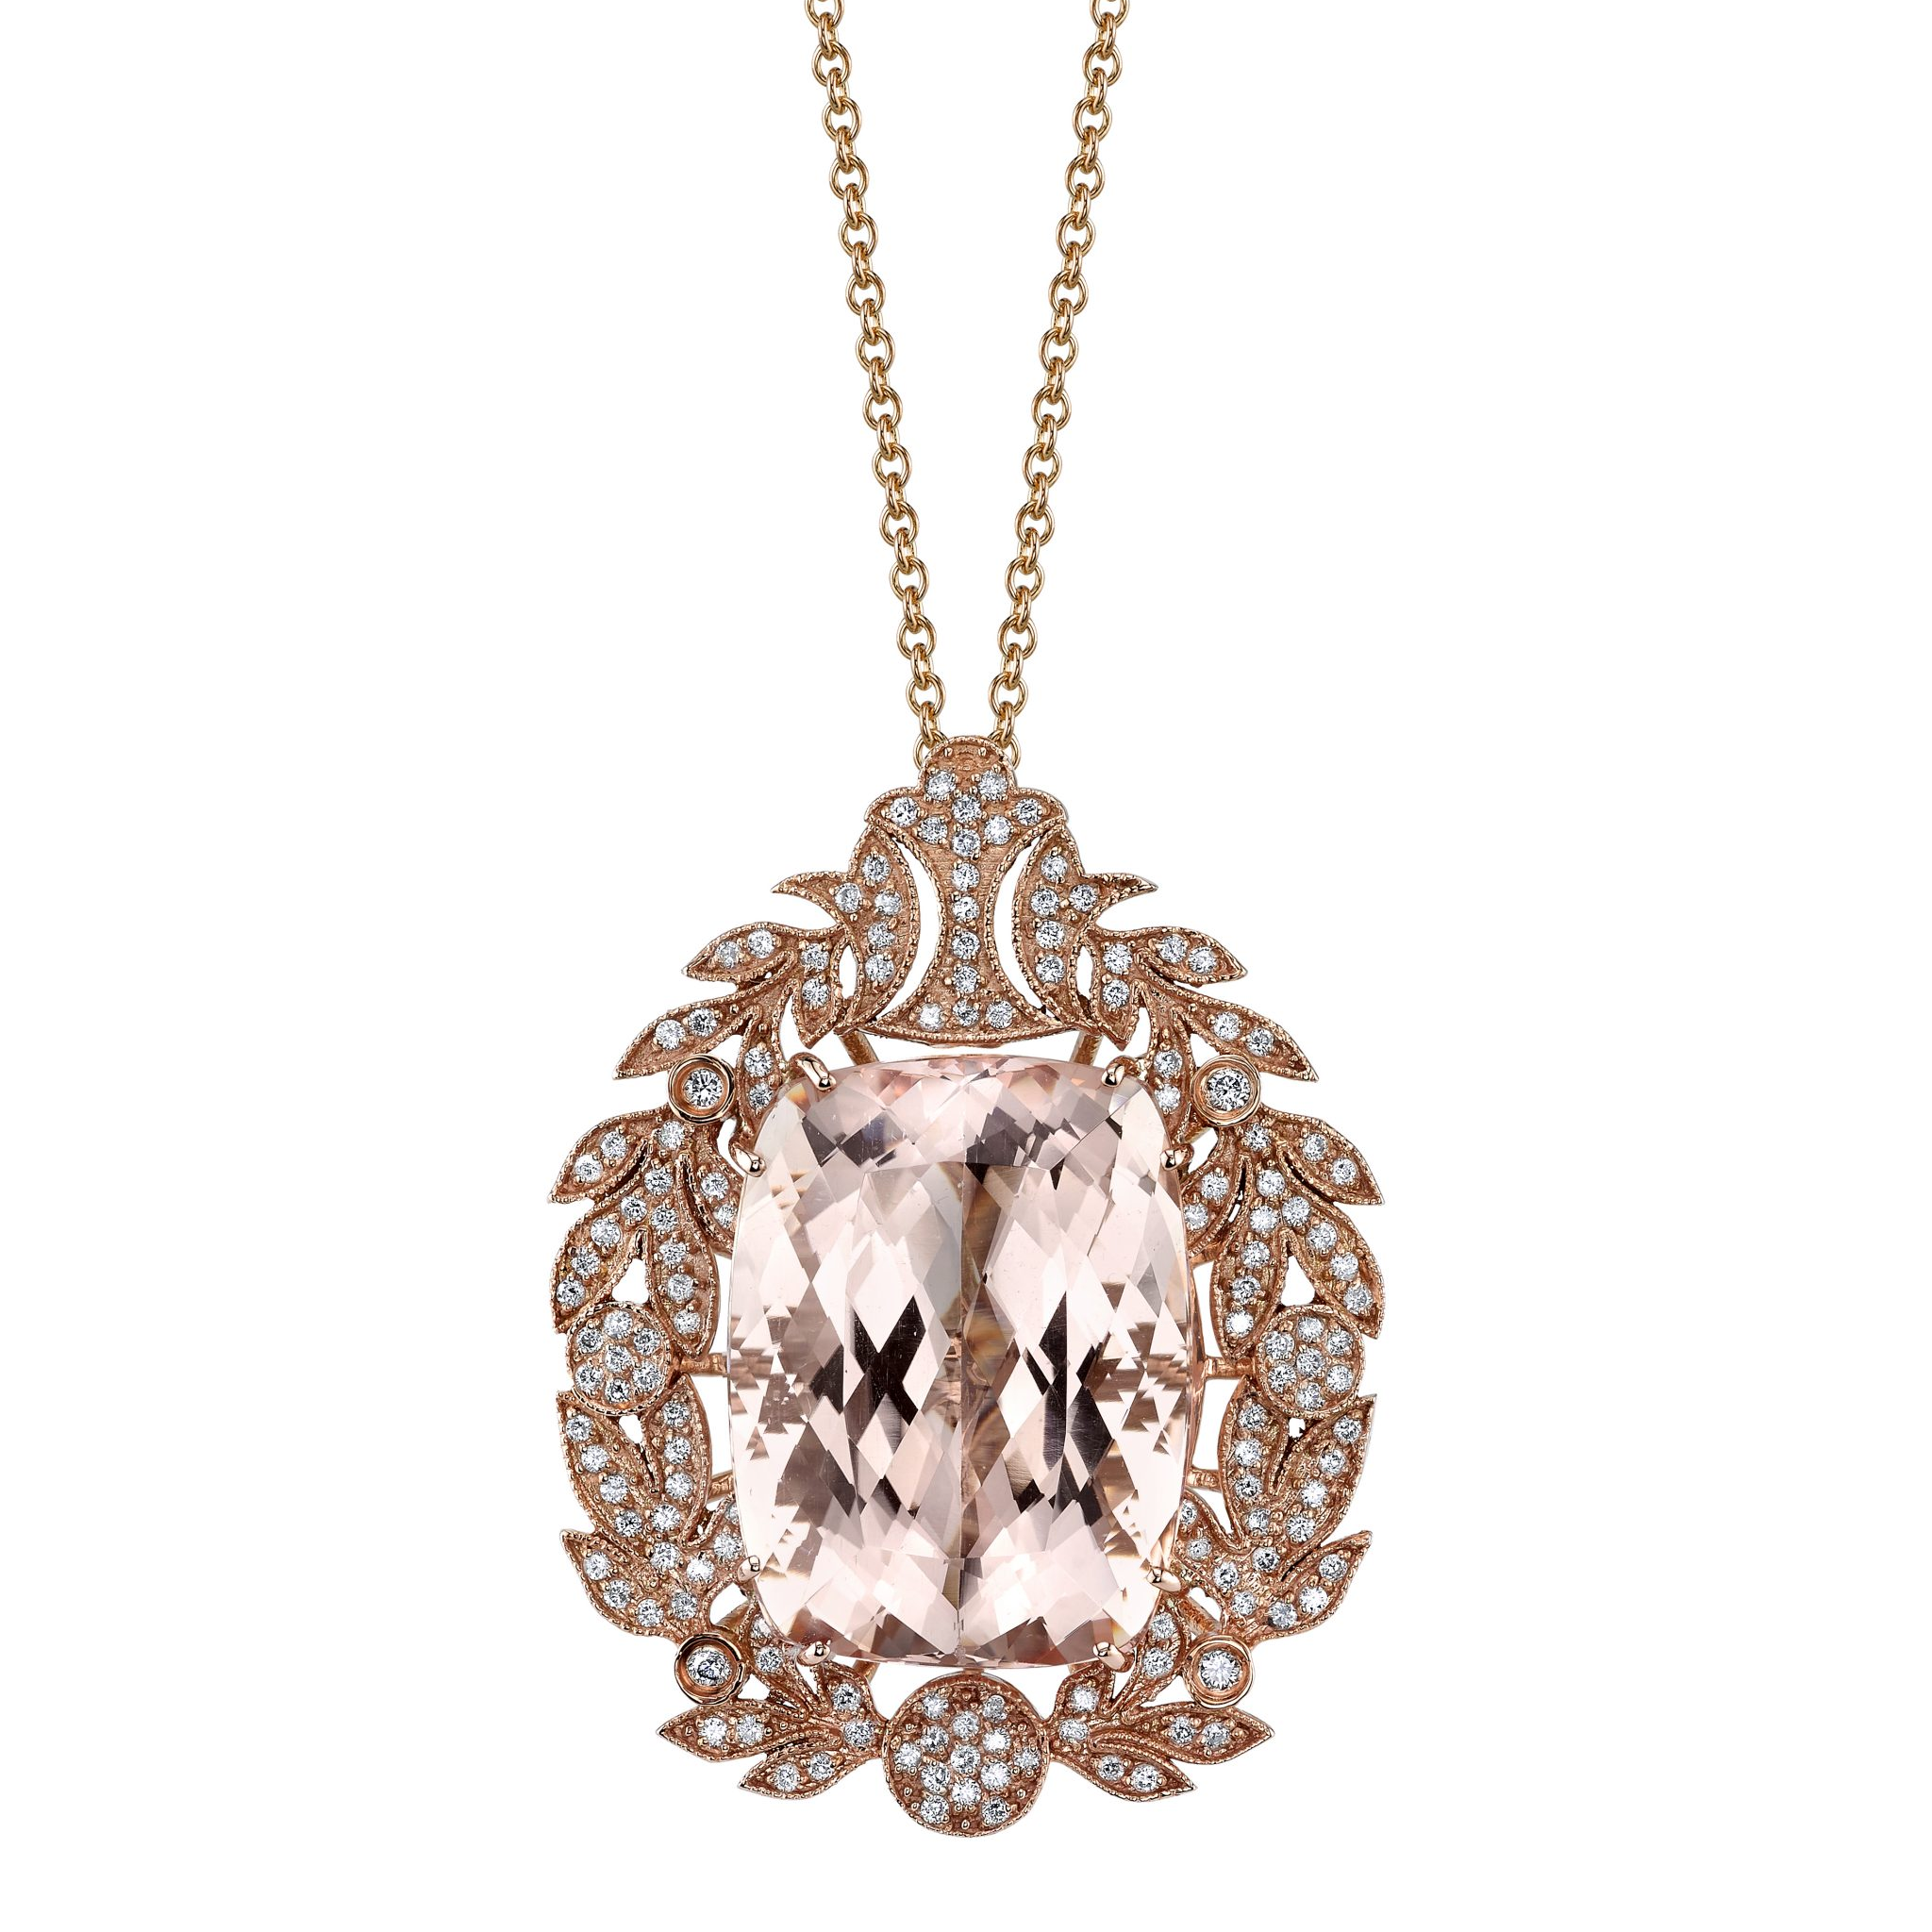 inch pendant white chain diamond emerald halo necklace cut in morganite gold tcw more mr